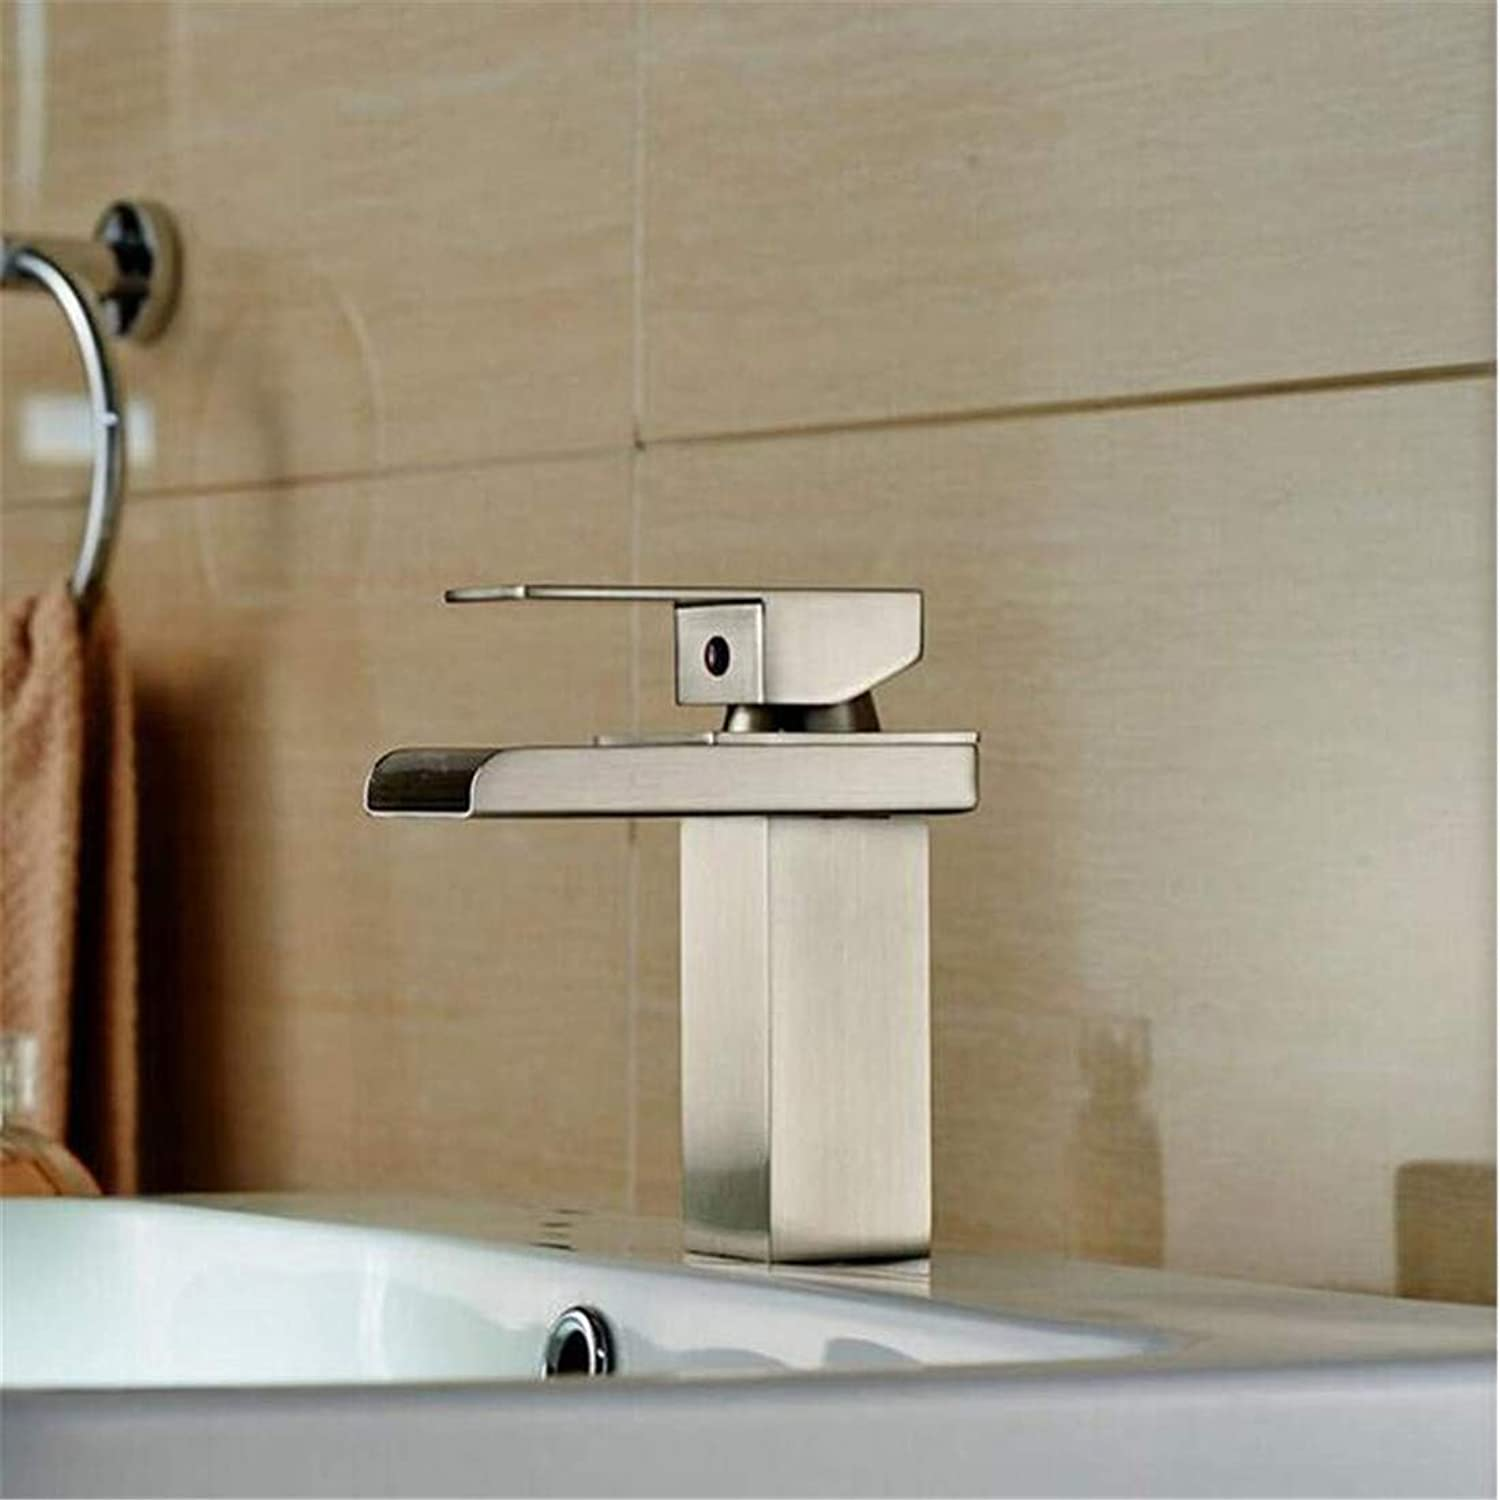 Faucet Blender Vintage Plated Kitchen Faucetfaucets Basin Mixer Nickel Basin Faucet Single Hole Hot Cold Water